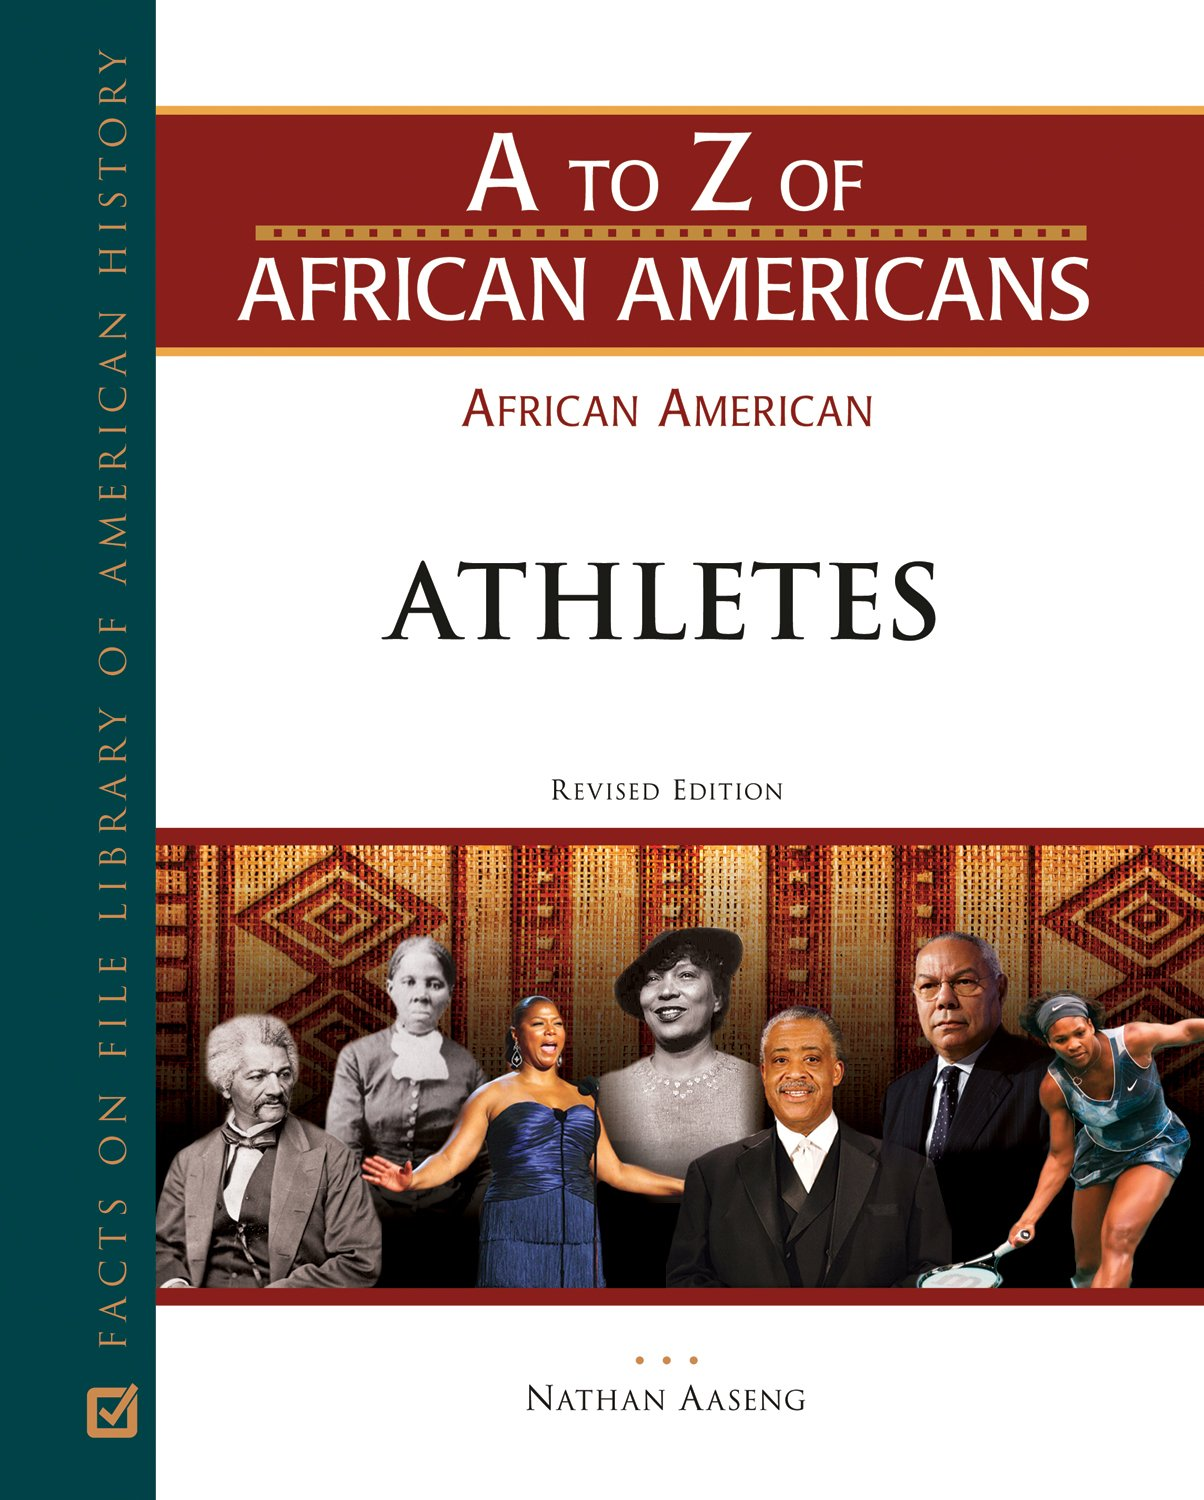 African-American Athletes (A to Z of African Americans)